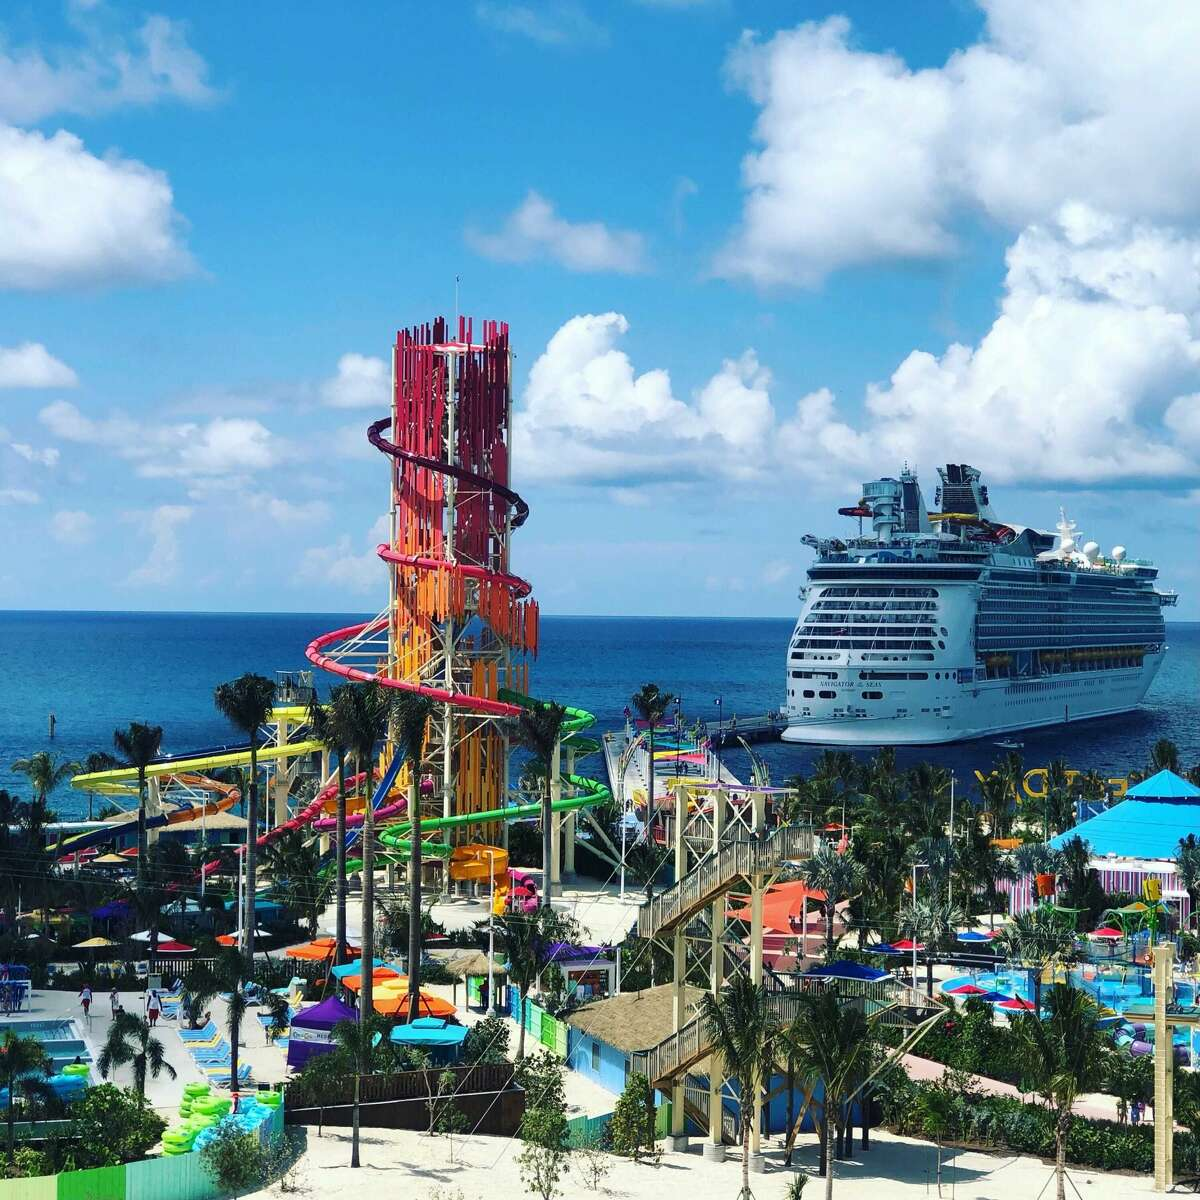 Perfect Day at CocoCay, Royal Caribbean's private island in The Bahamas.